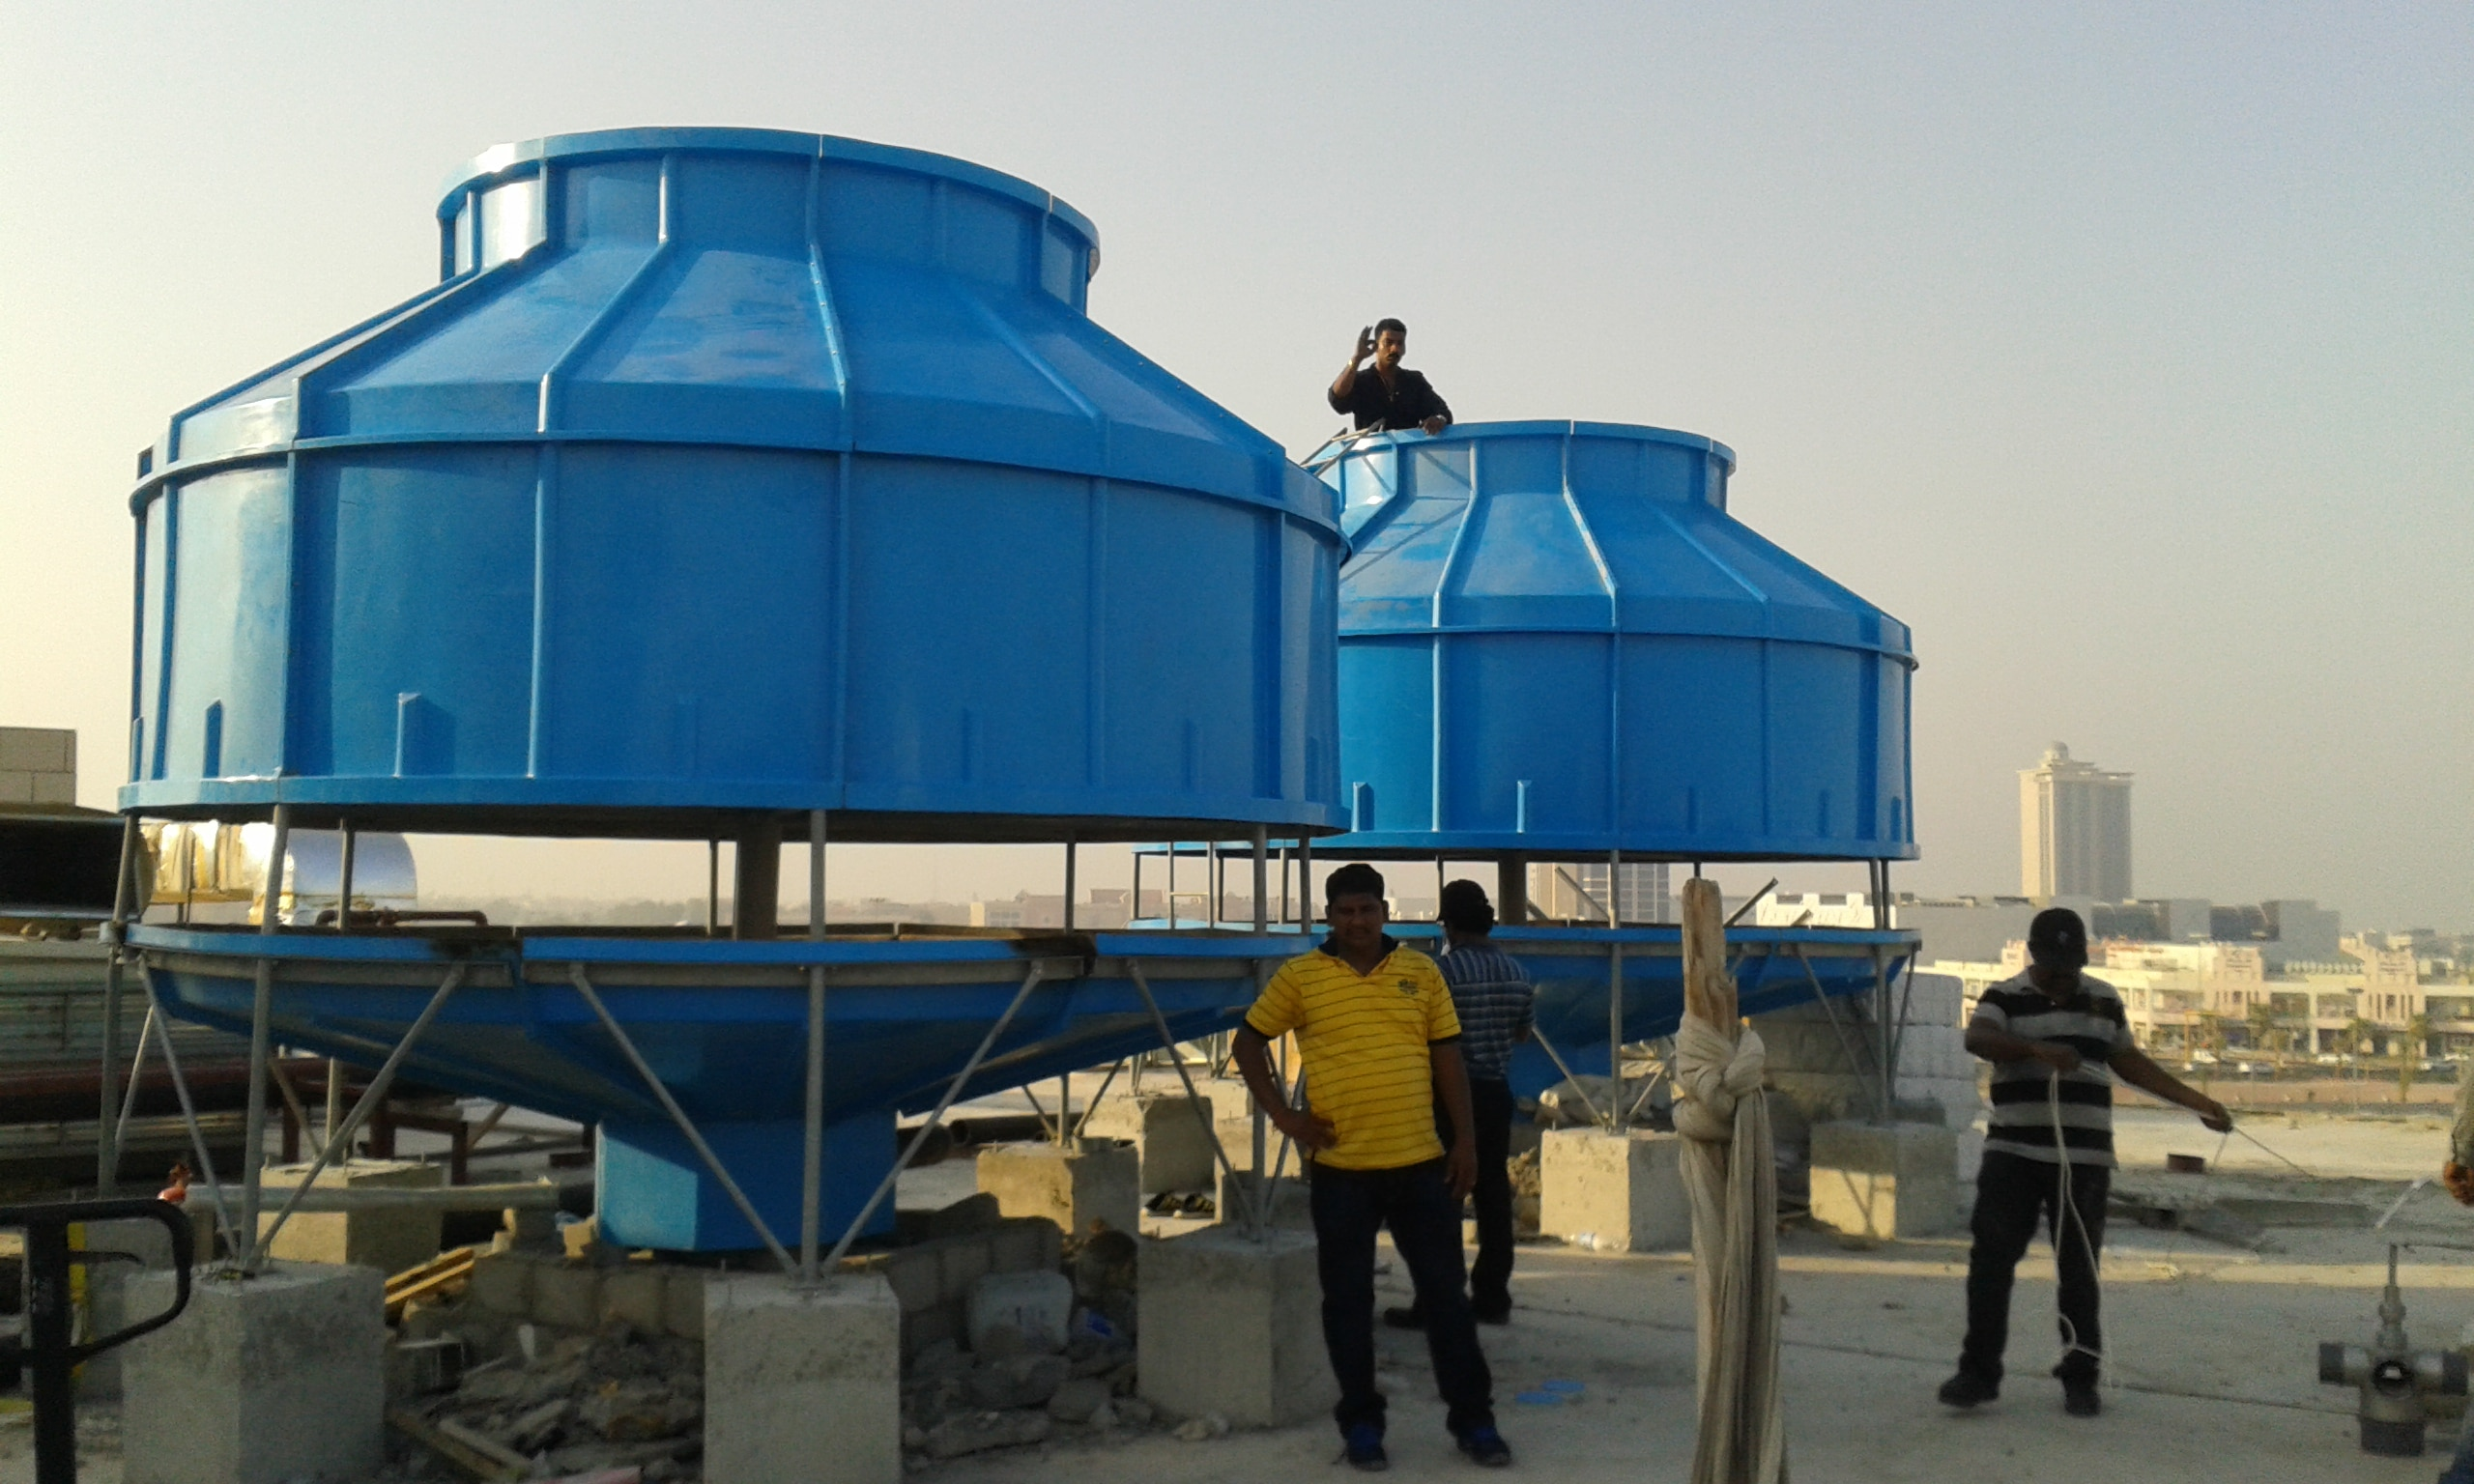 Economical Industrial Cooling Towers   We are successfully leading manufacturer, supplier and exporter of a range of Economical Industrial Cooling Towers in Coimbatore, Tamil Nadu, India